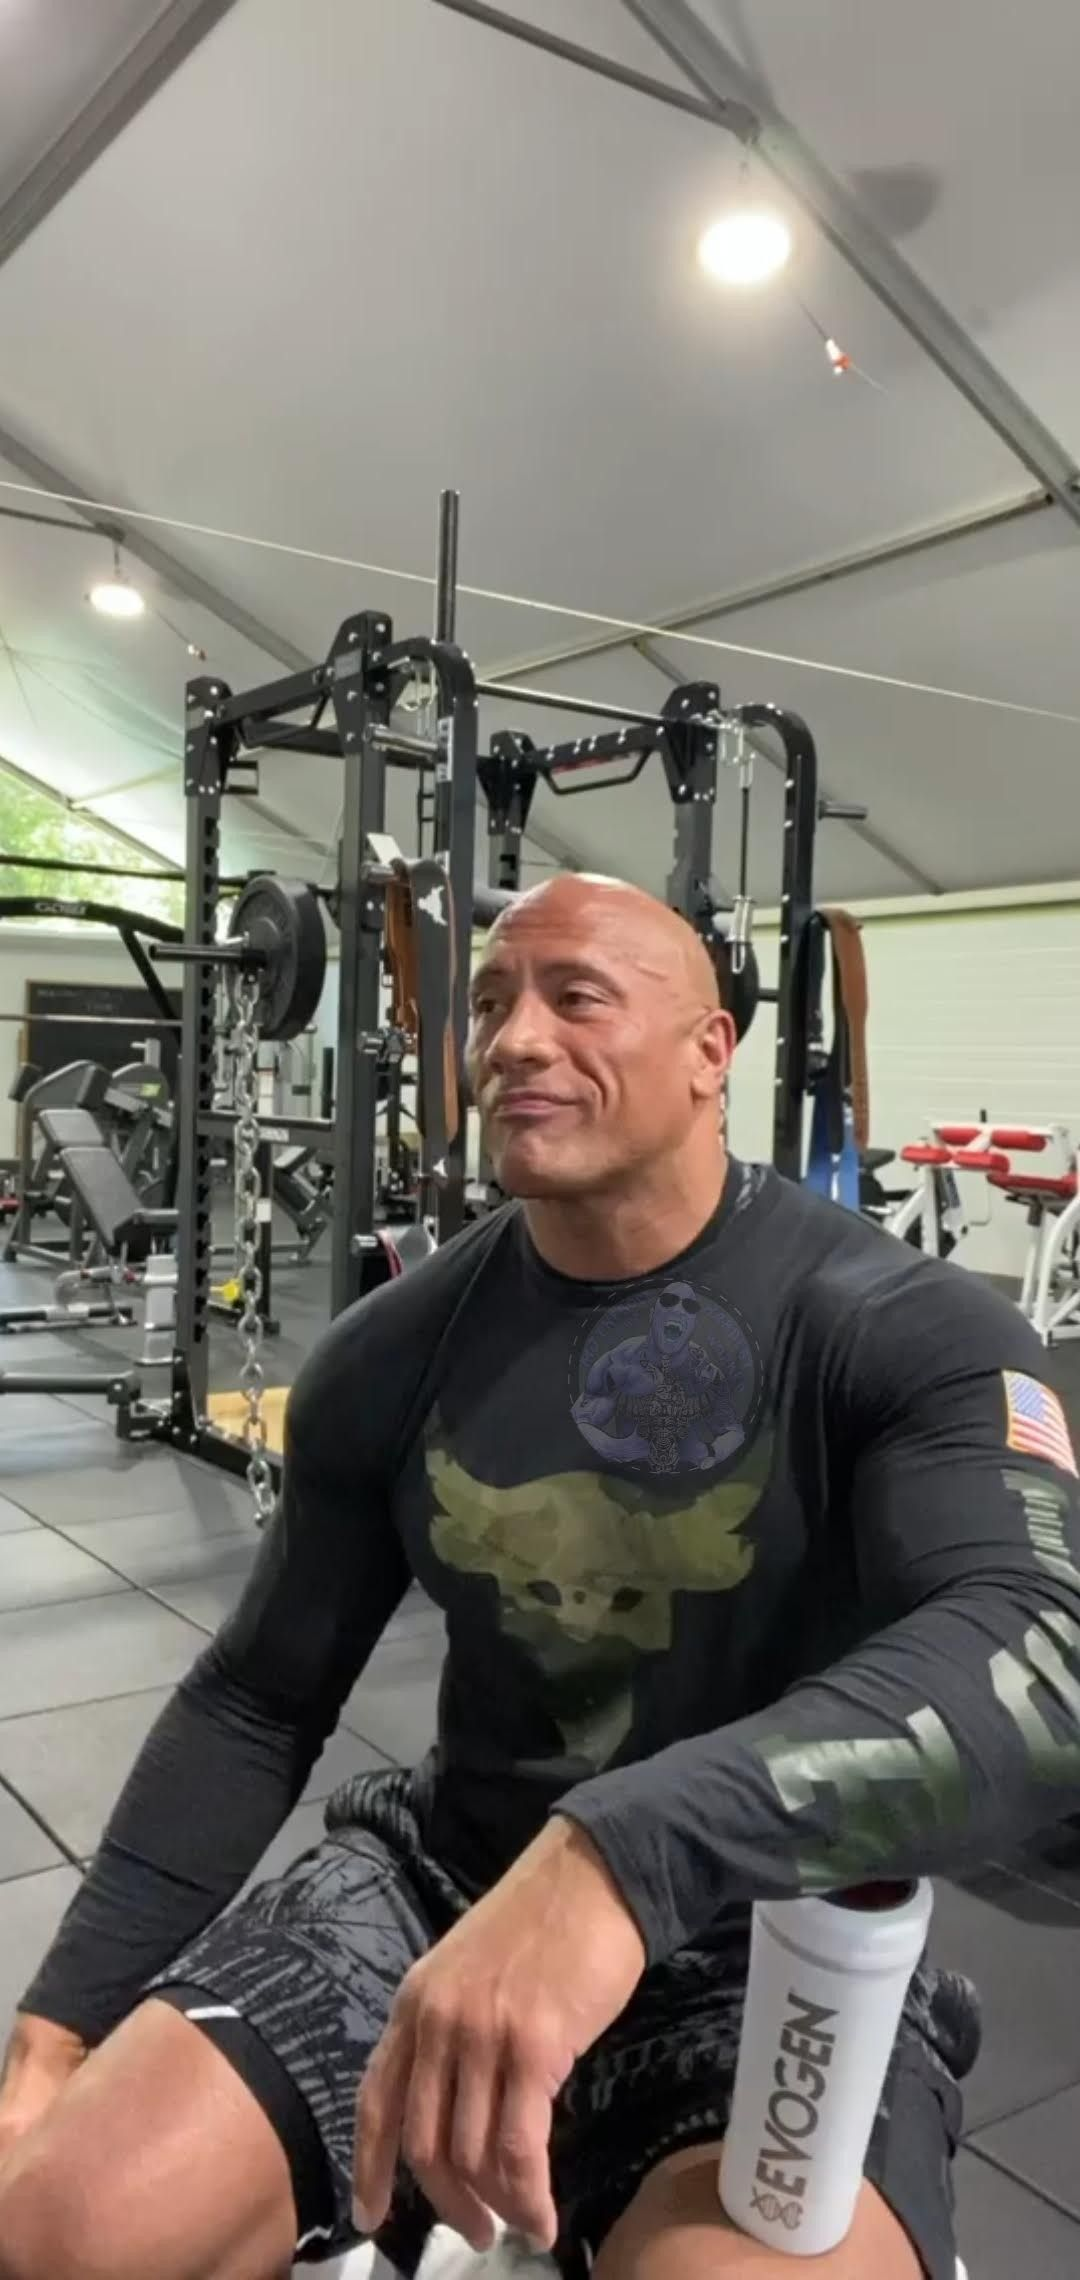 This Morning I See All Video S I Work A Bit In Afternoon 3 Soaps After Eatch Other Than Block News Now I Heve Rest Strength Workout Dwayne Johnson Fitness Body